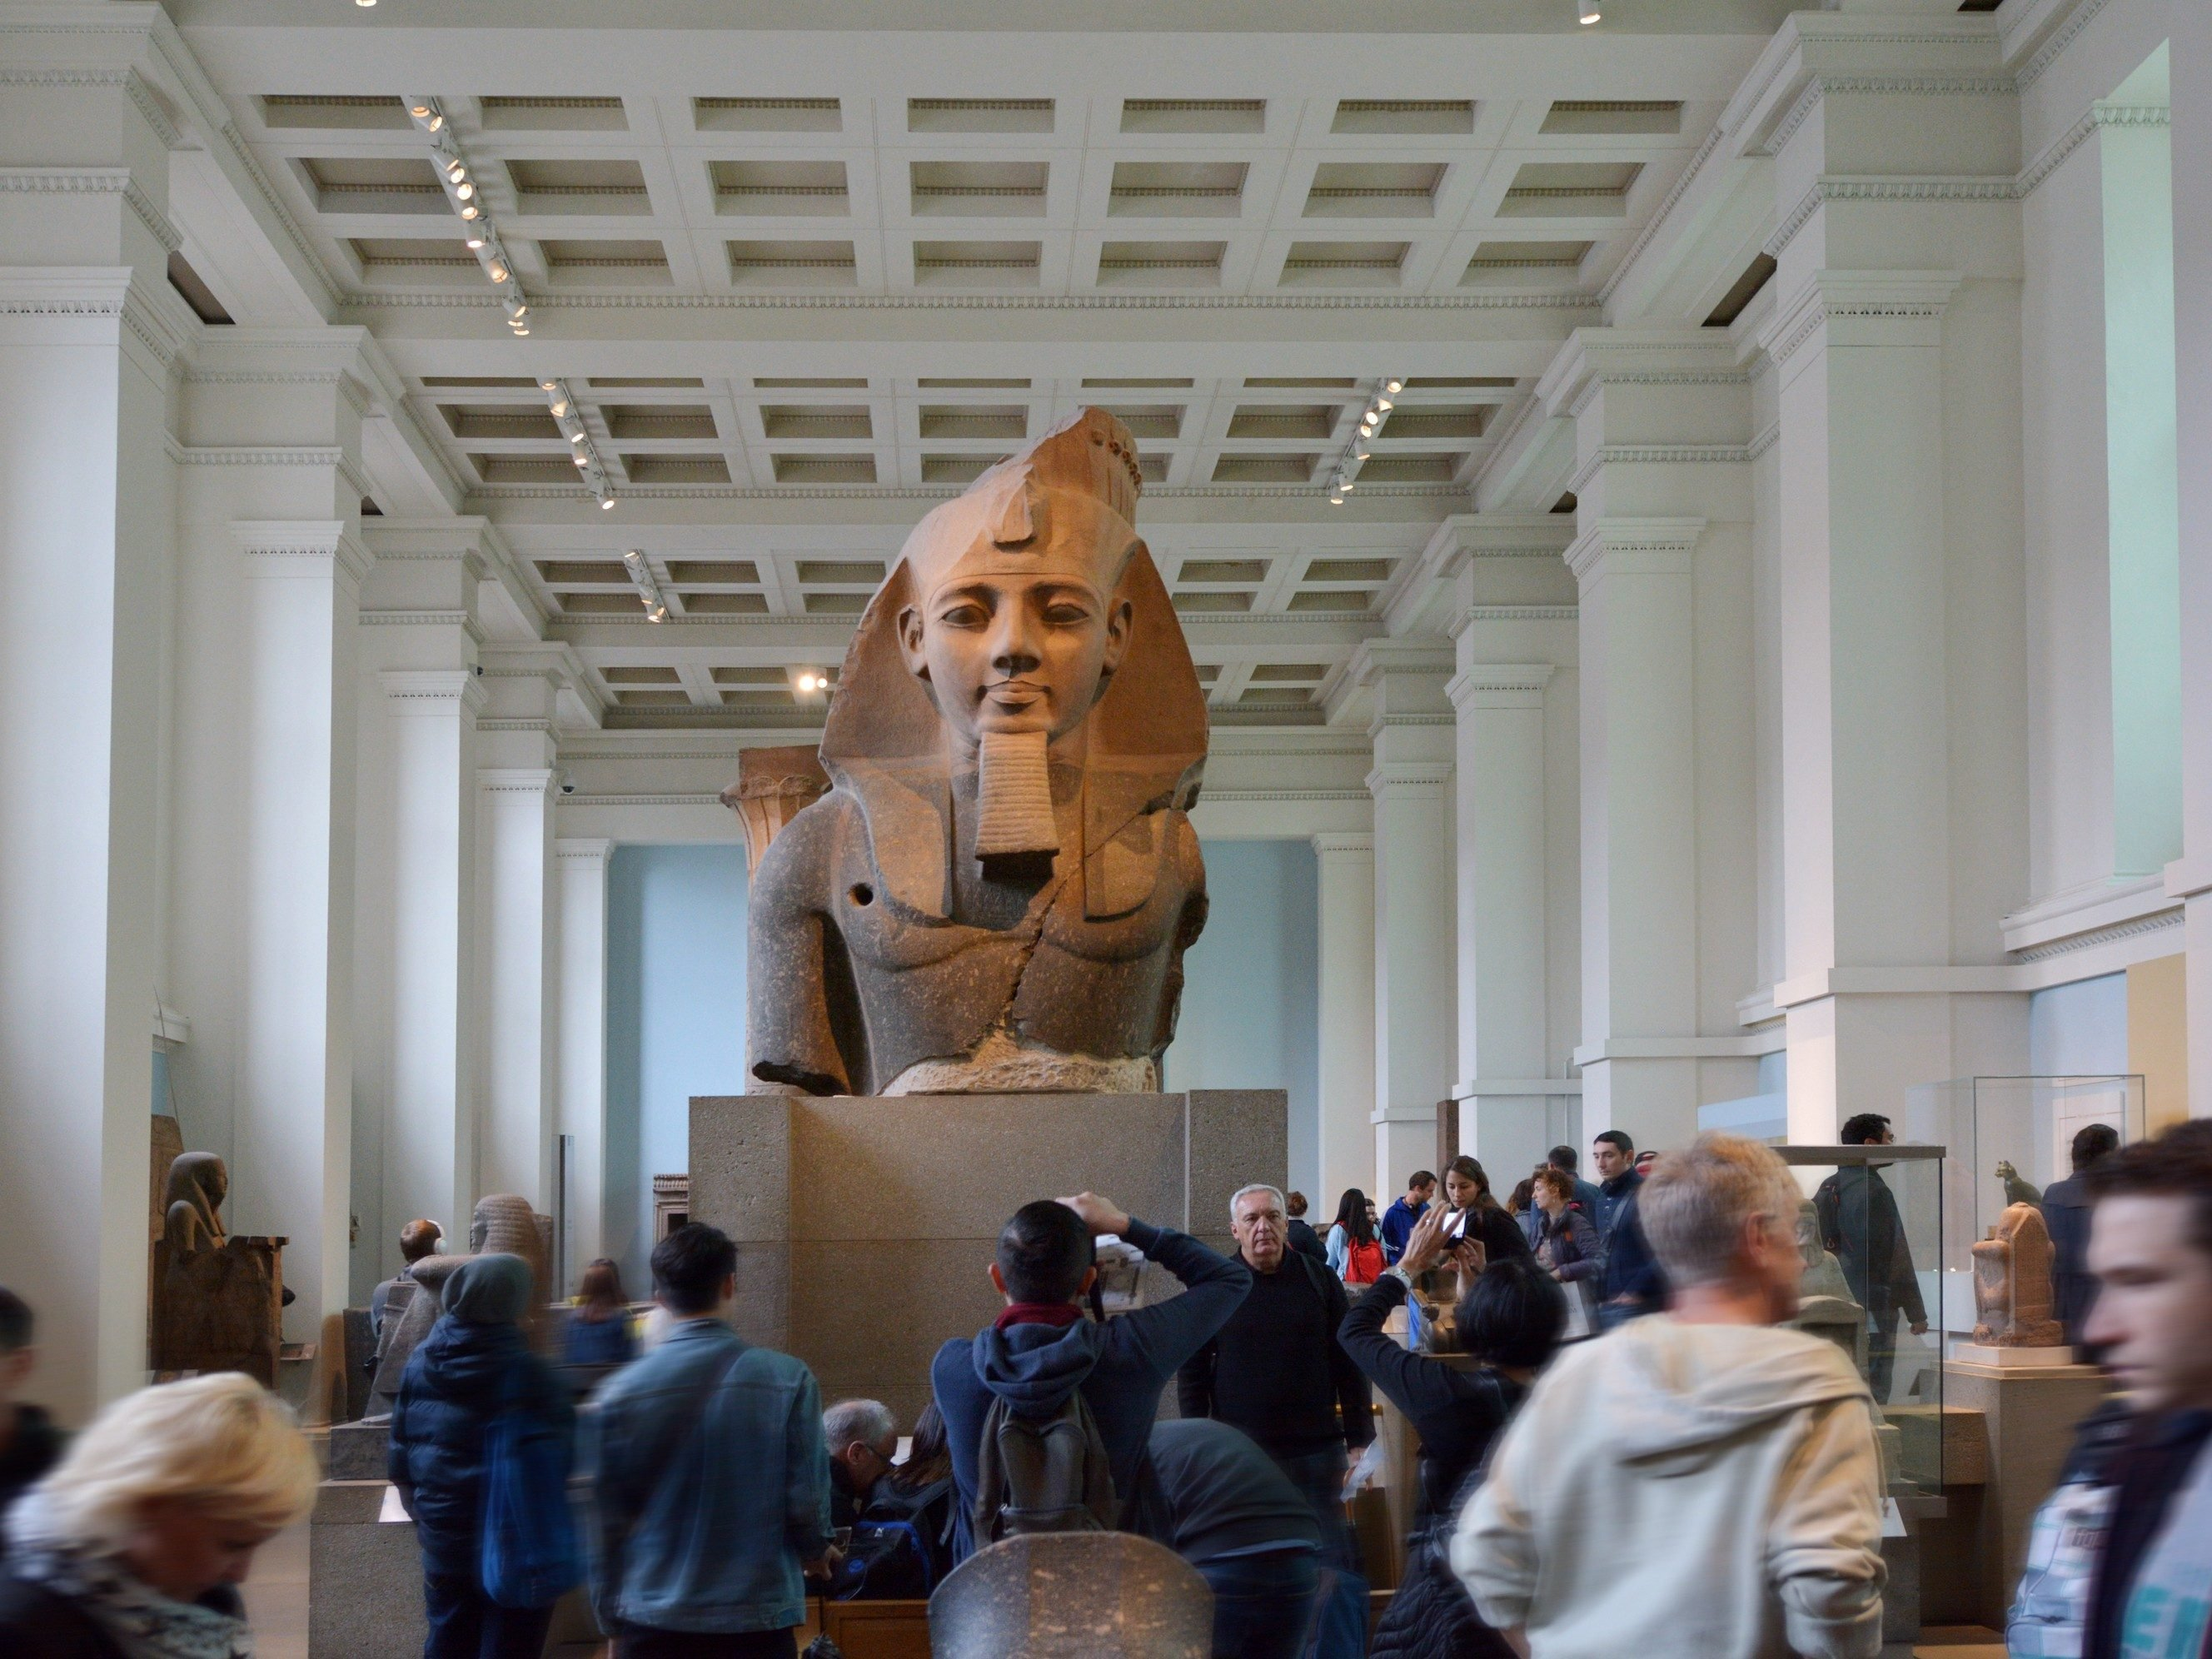 London attractions: The British Museum